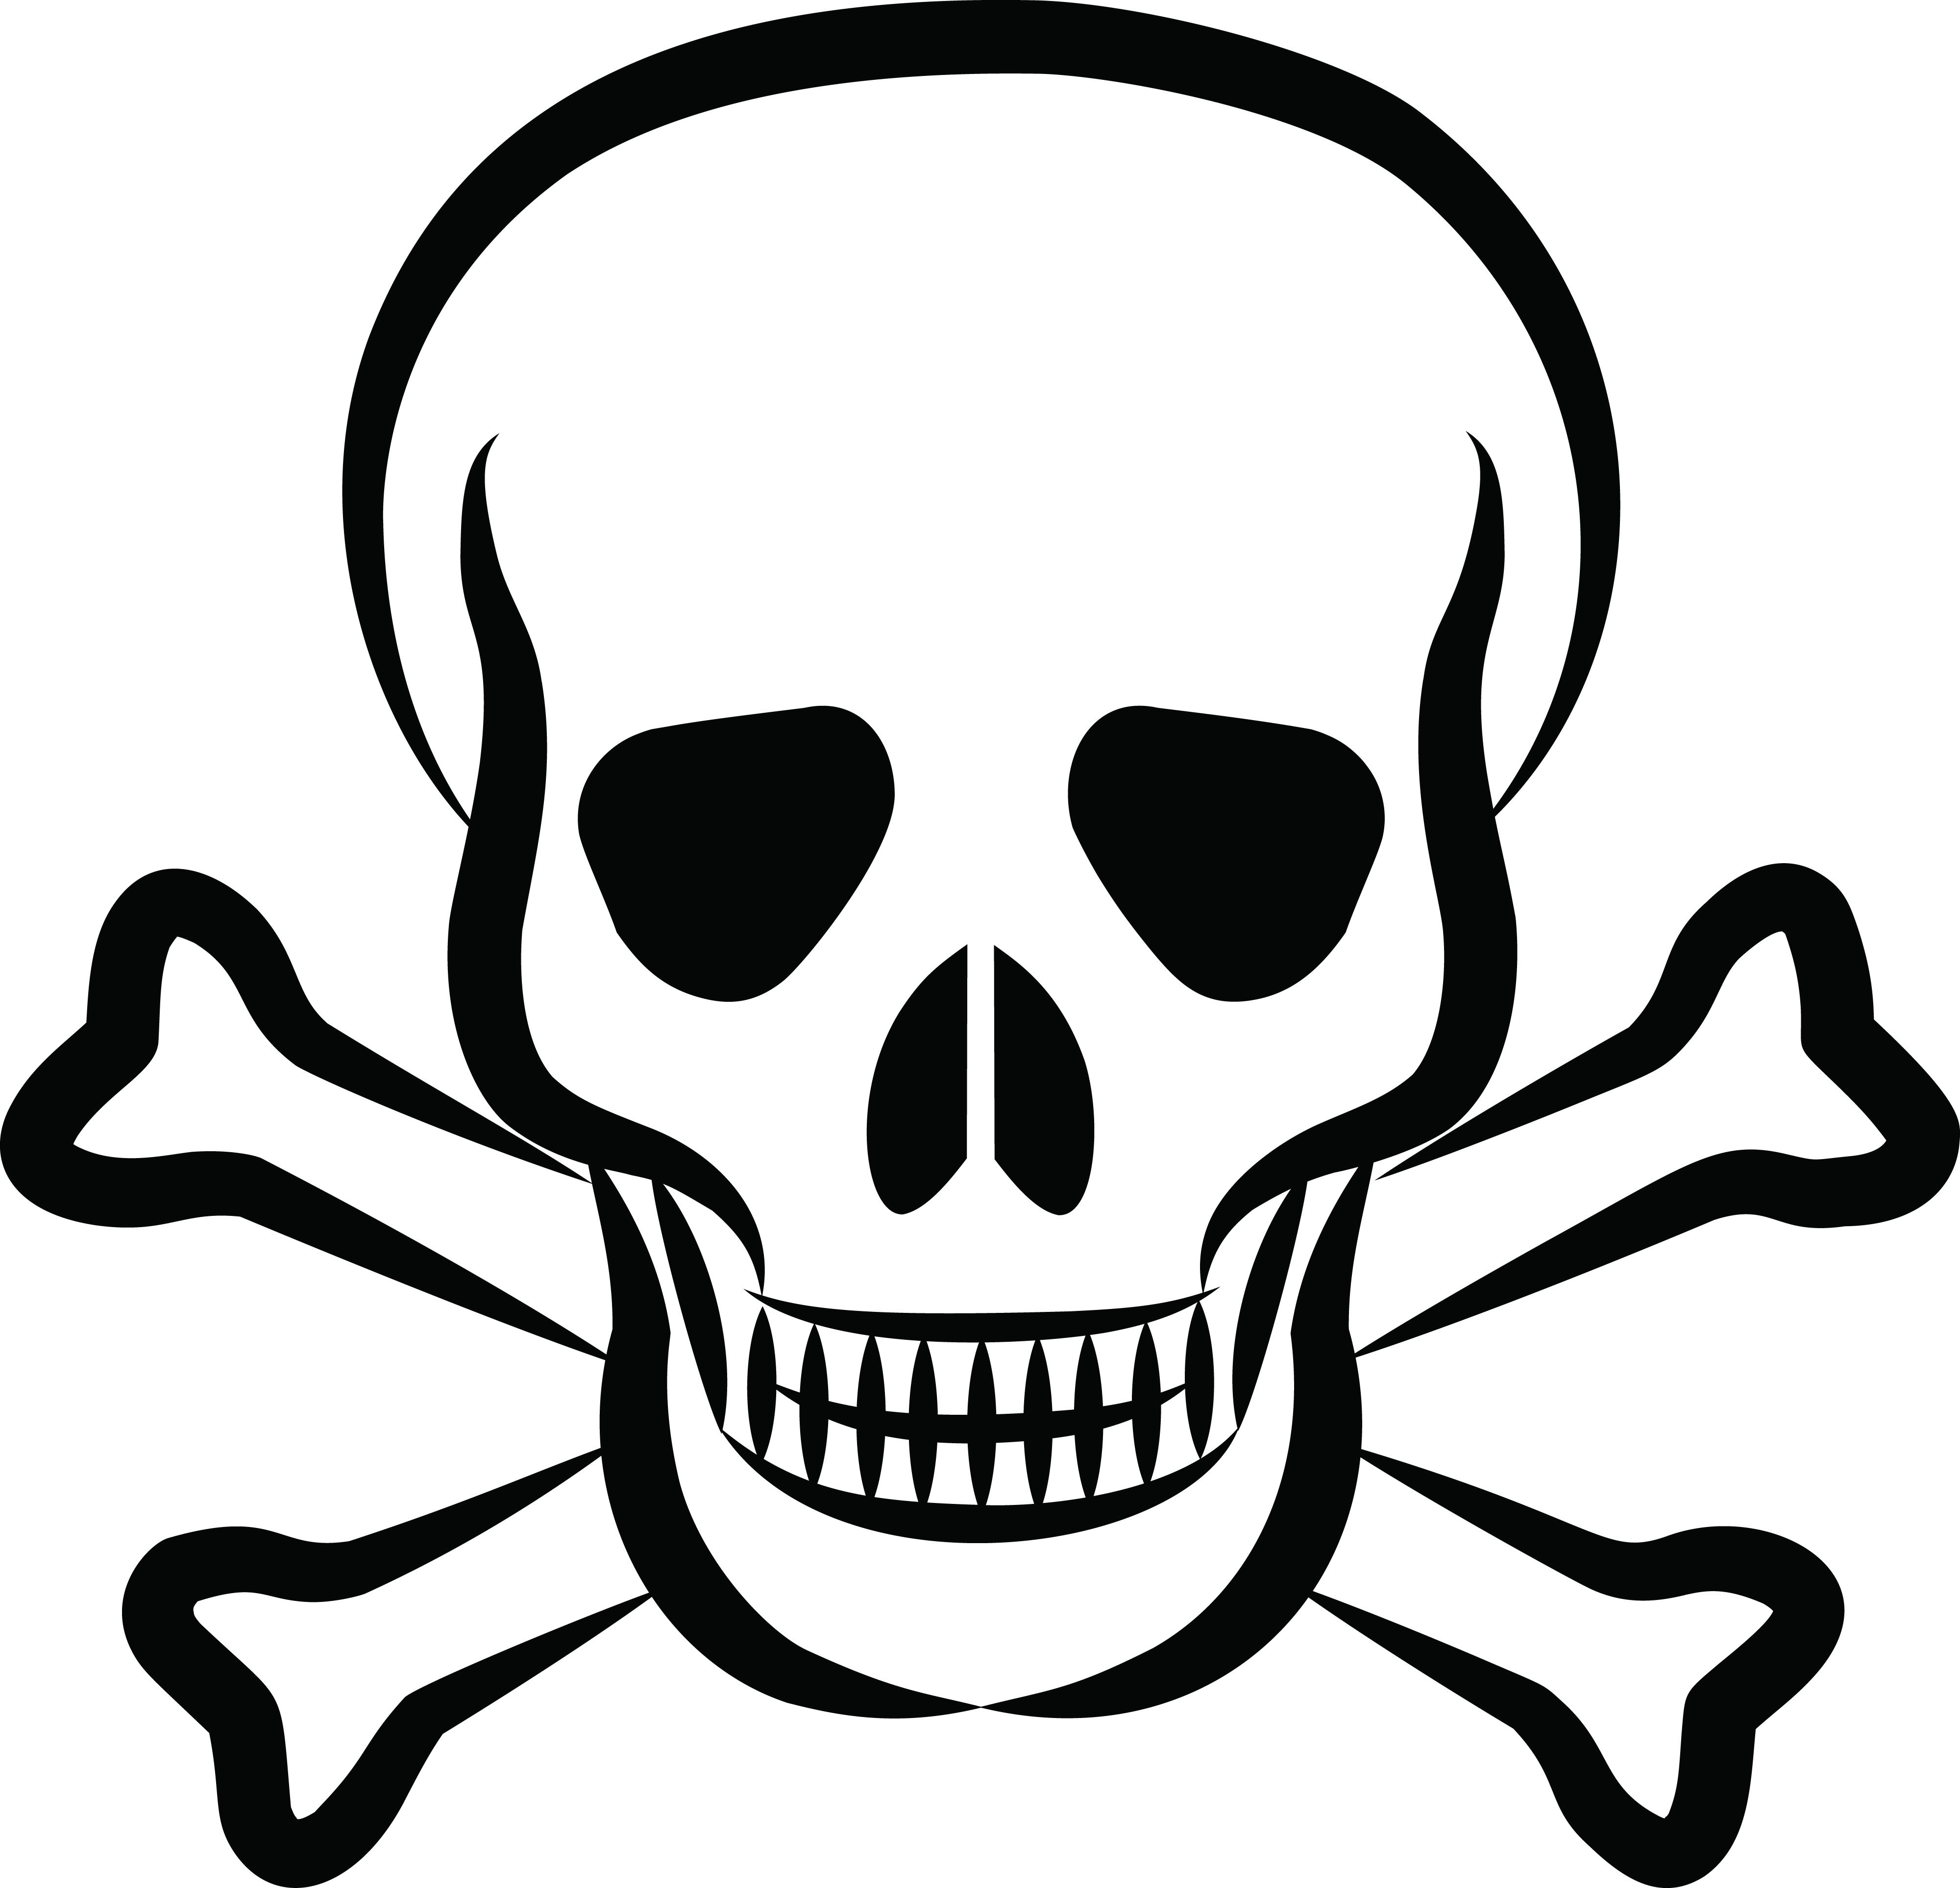 Free Clipart Of A skull and crossbones Skull coloring